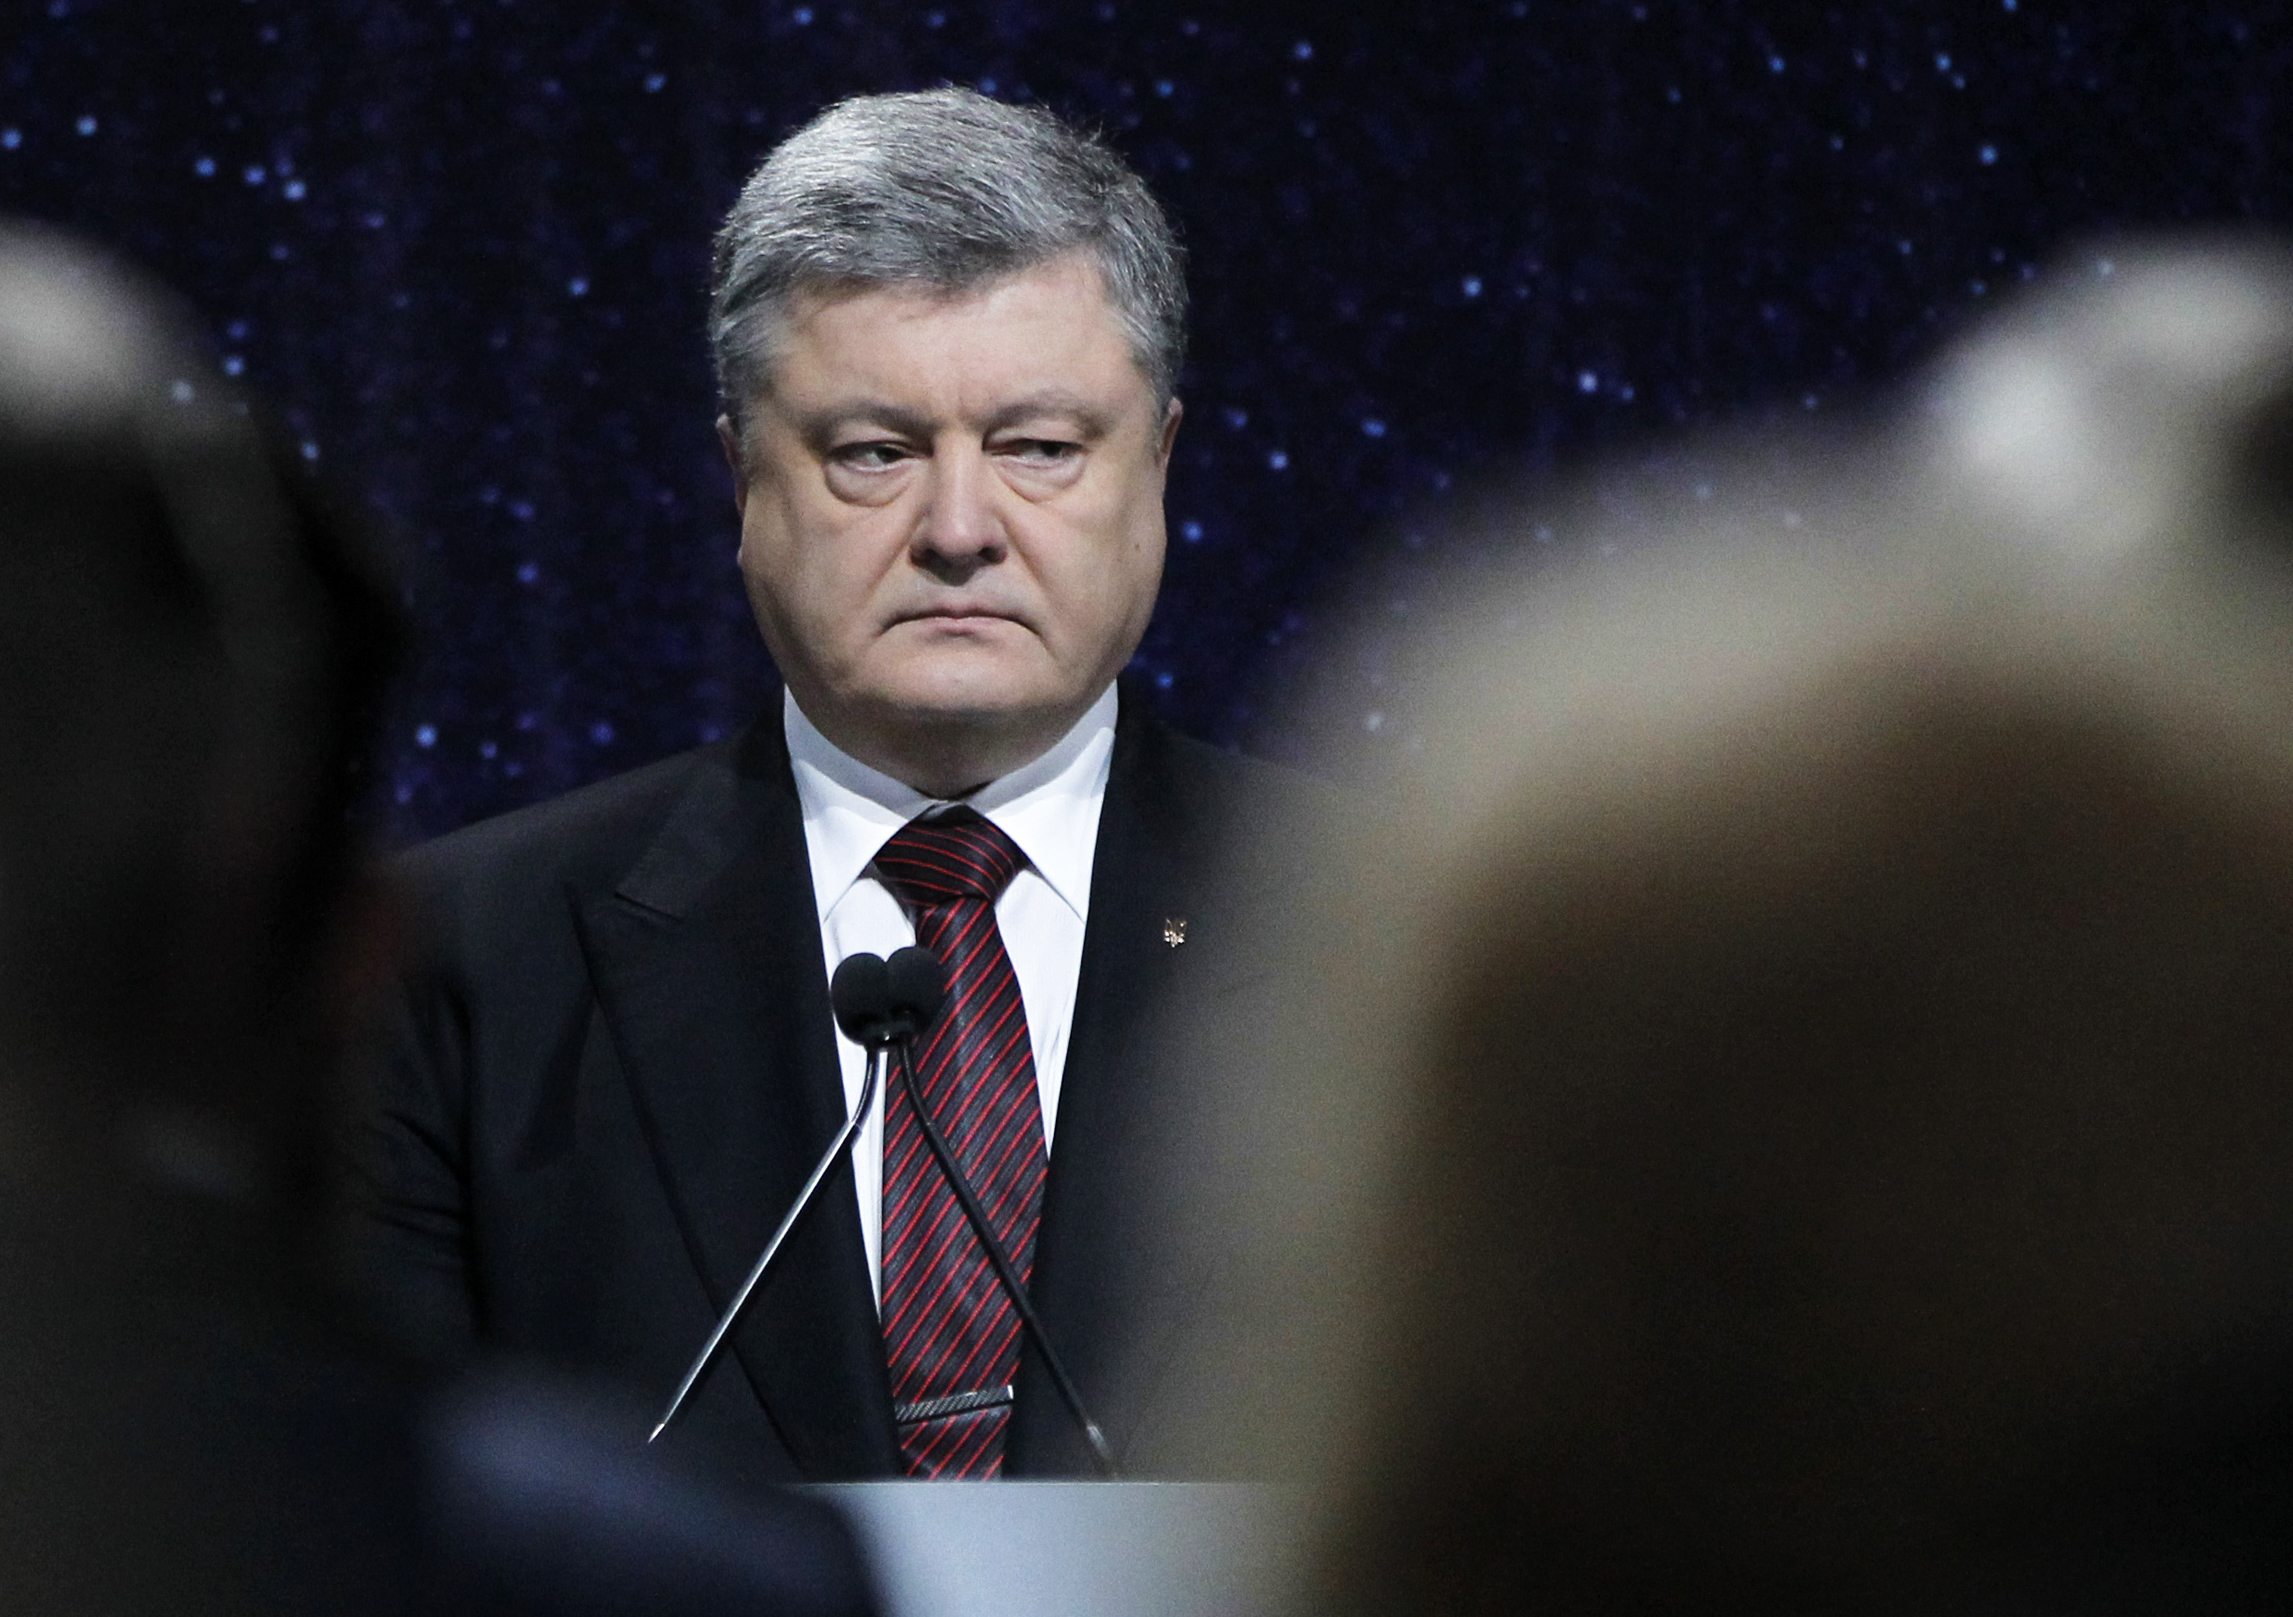 "Ukraine-4 Ukrainian President Petro Poroshenko looks on at during the ceremony commemorating the fallen Heroes of the ""Heavenly Hundred"" in Kiev, Ukraine, Thursday, Feb. 16, 2017. The ""Heavenly Hundred"" is what Ukrainians in Kiev call those who died during months of anti-government protests in 2013 and 2014. (AP Photo/Sergei Chuzavkov)"